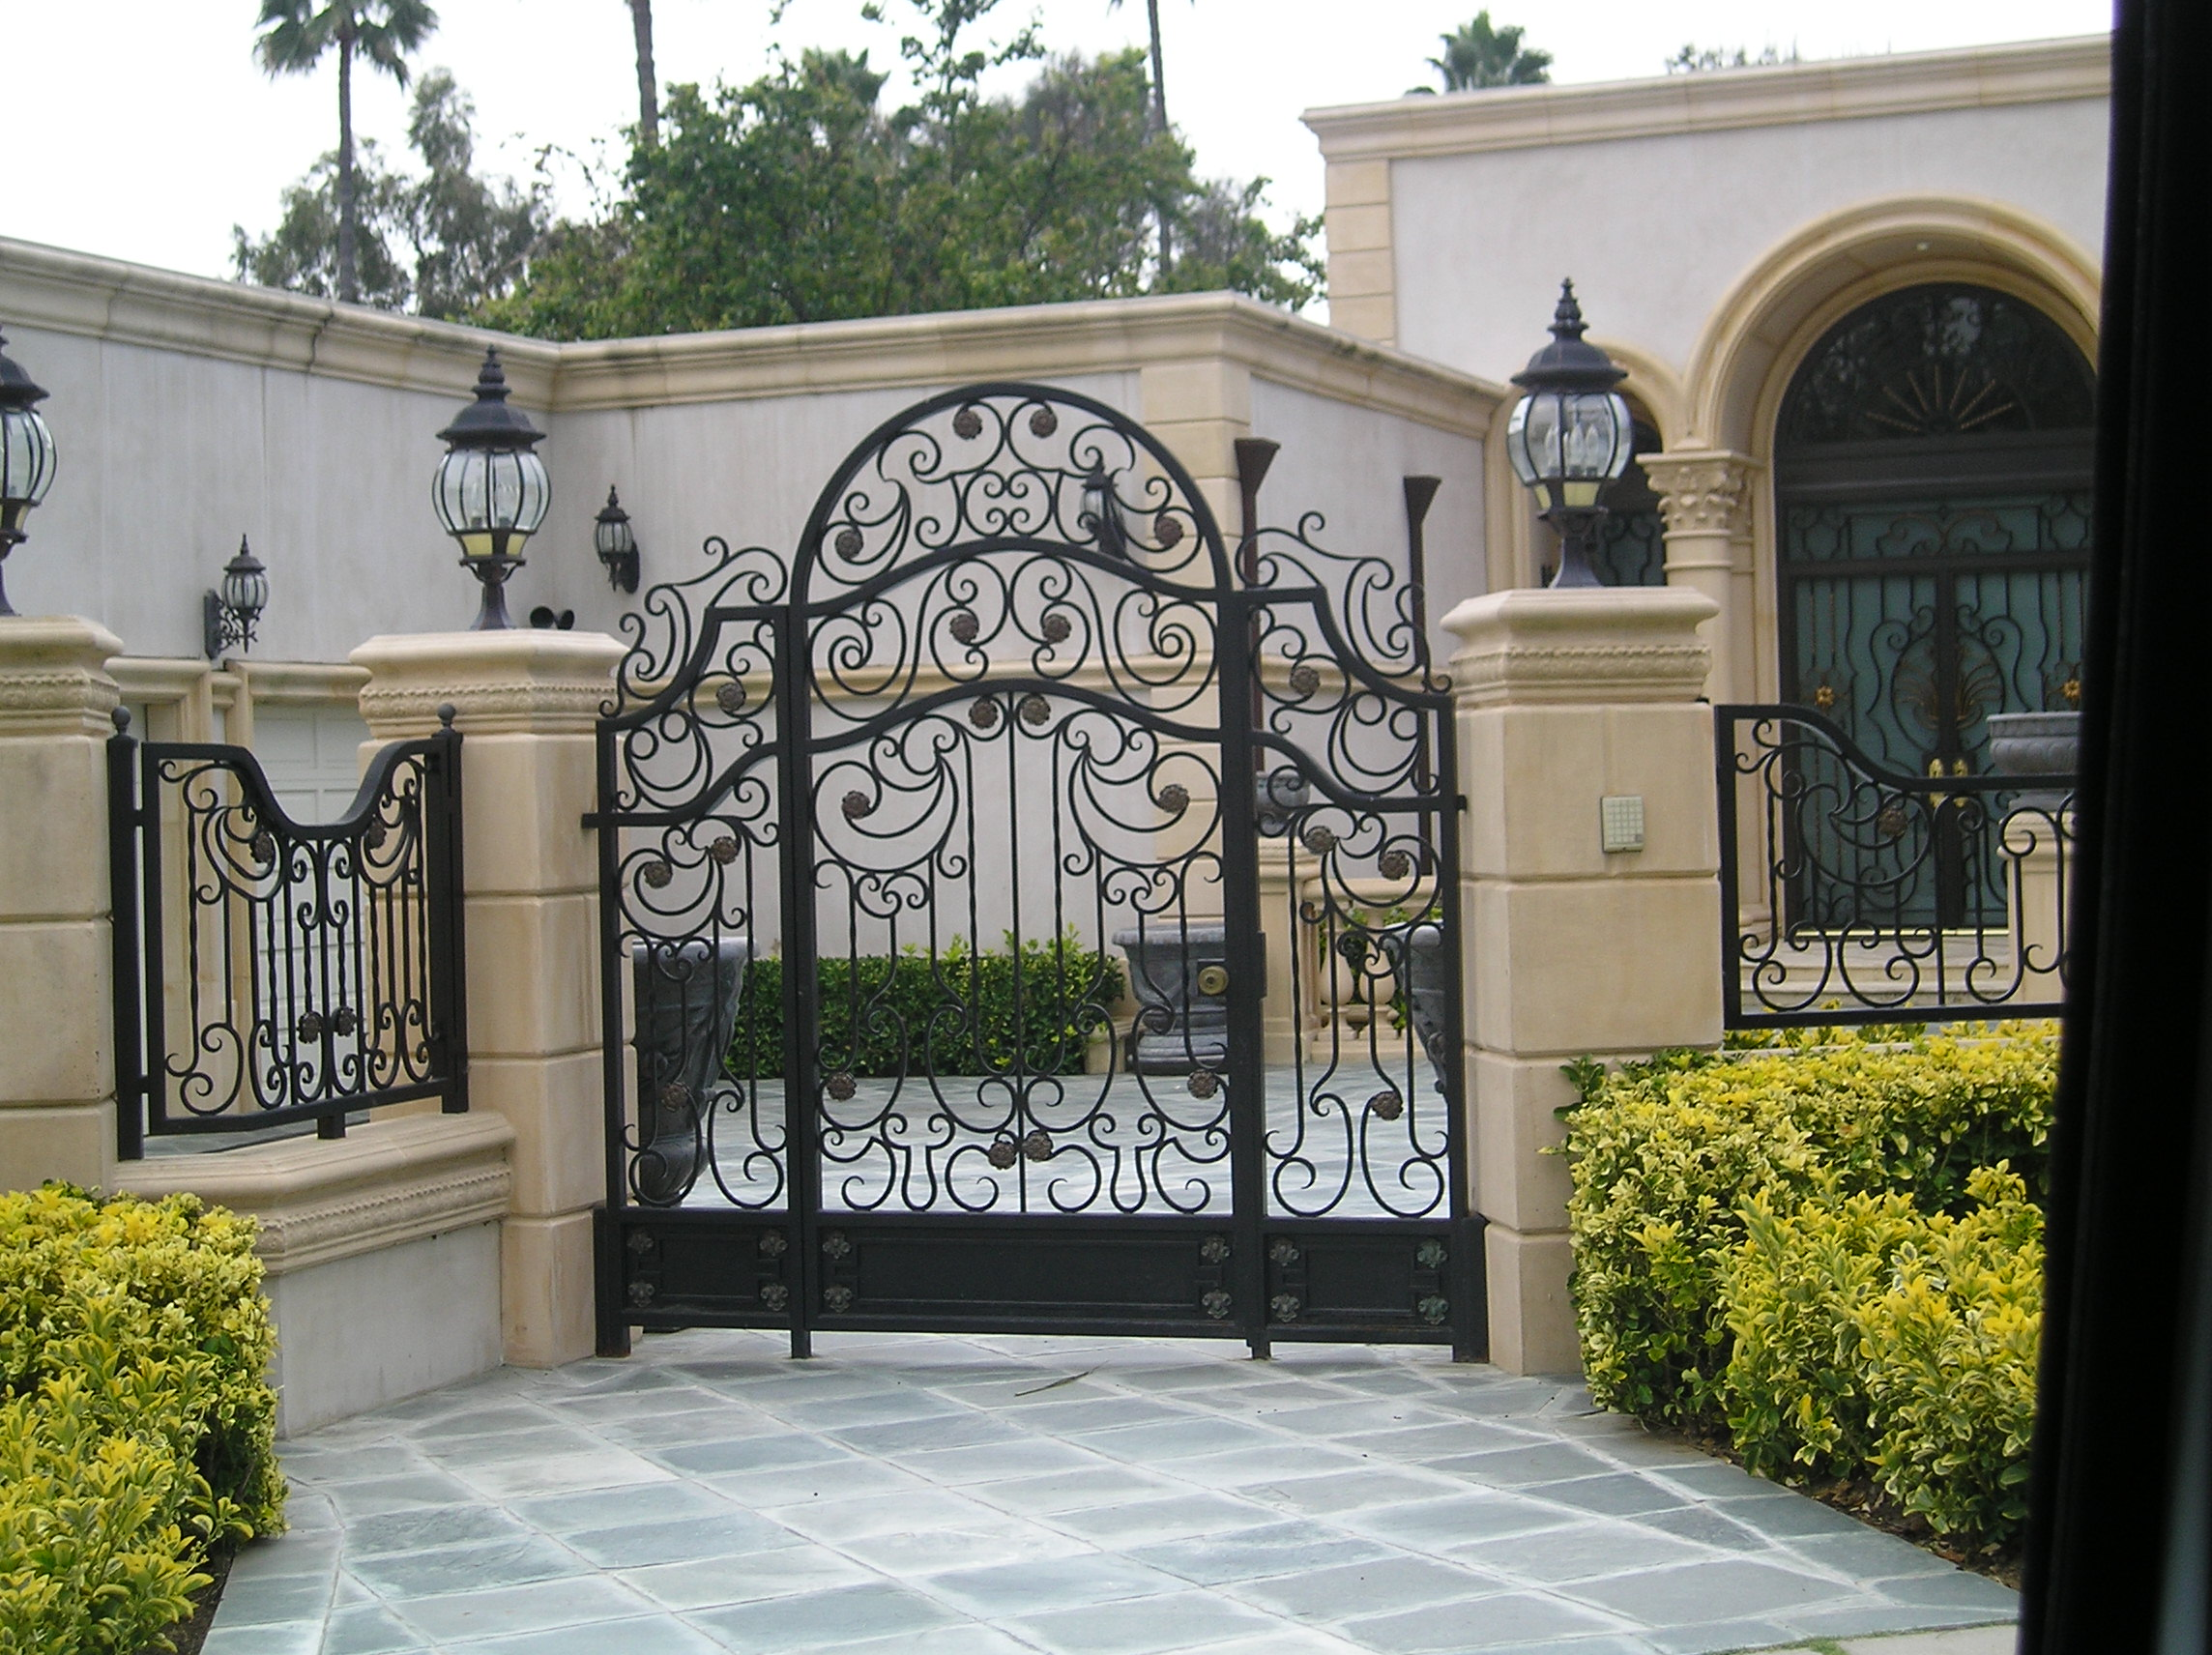 Architecture Electric Gate Steel And Metal Design Driveway Iron Home Security Wrought Modern Door Front Gates Designs Homes Farm Rod Locks House